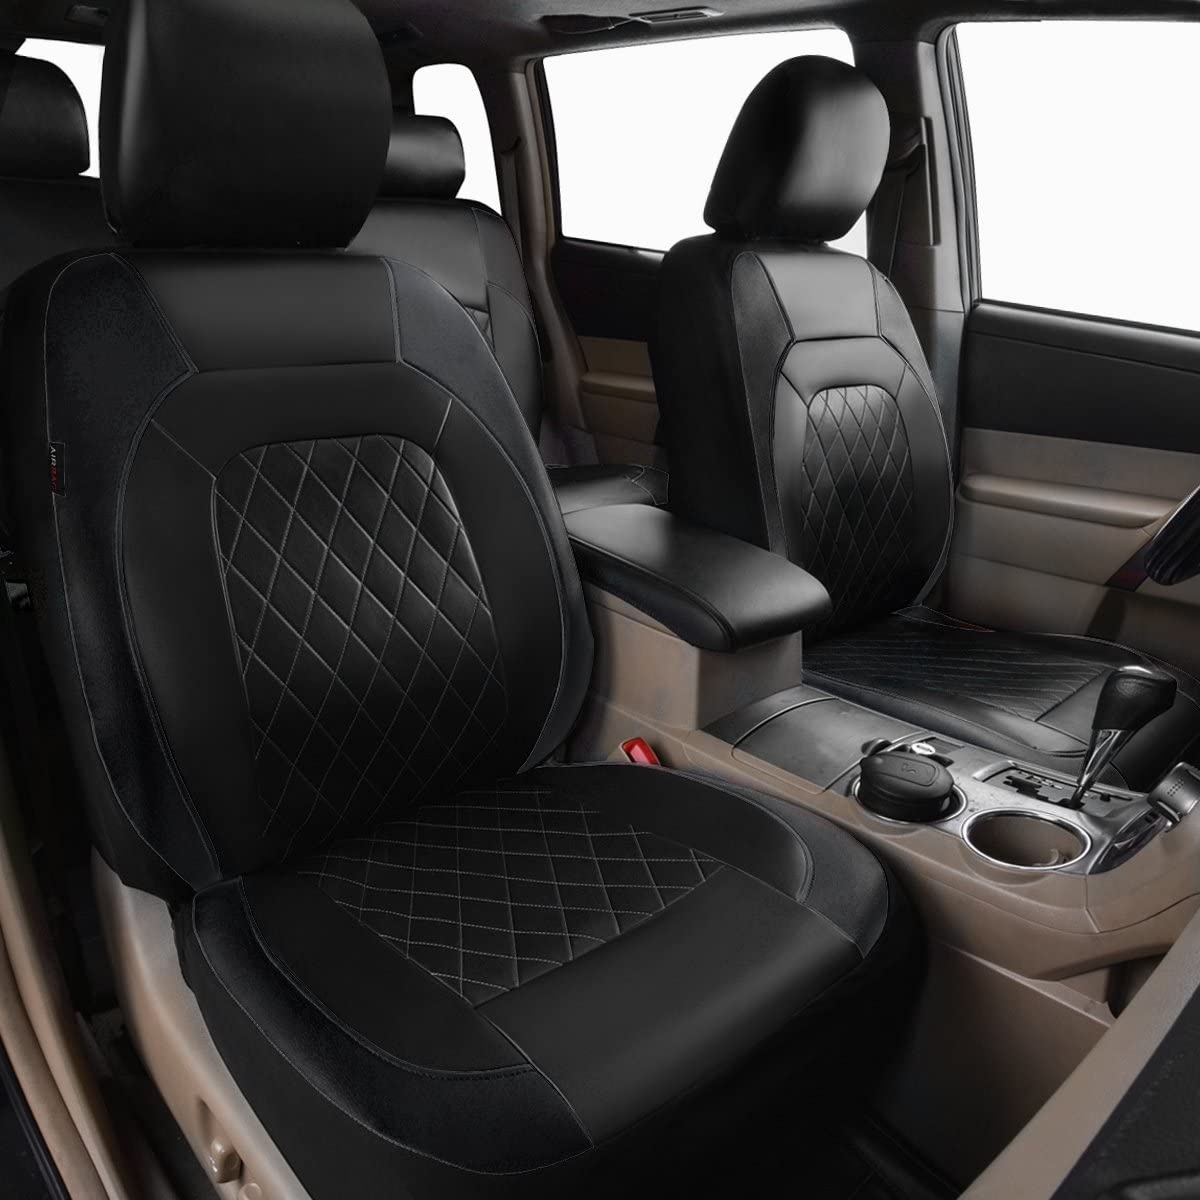 Black with Mint HORSE KINGDOM Universal Car Seat Covers Faux Leather Full Seat 11 pcs Airbag Compatible Breathable